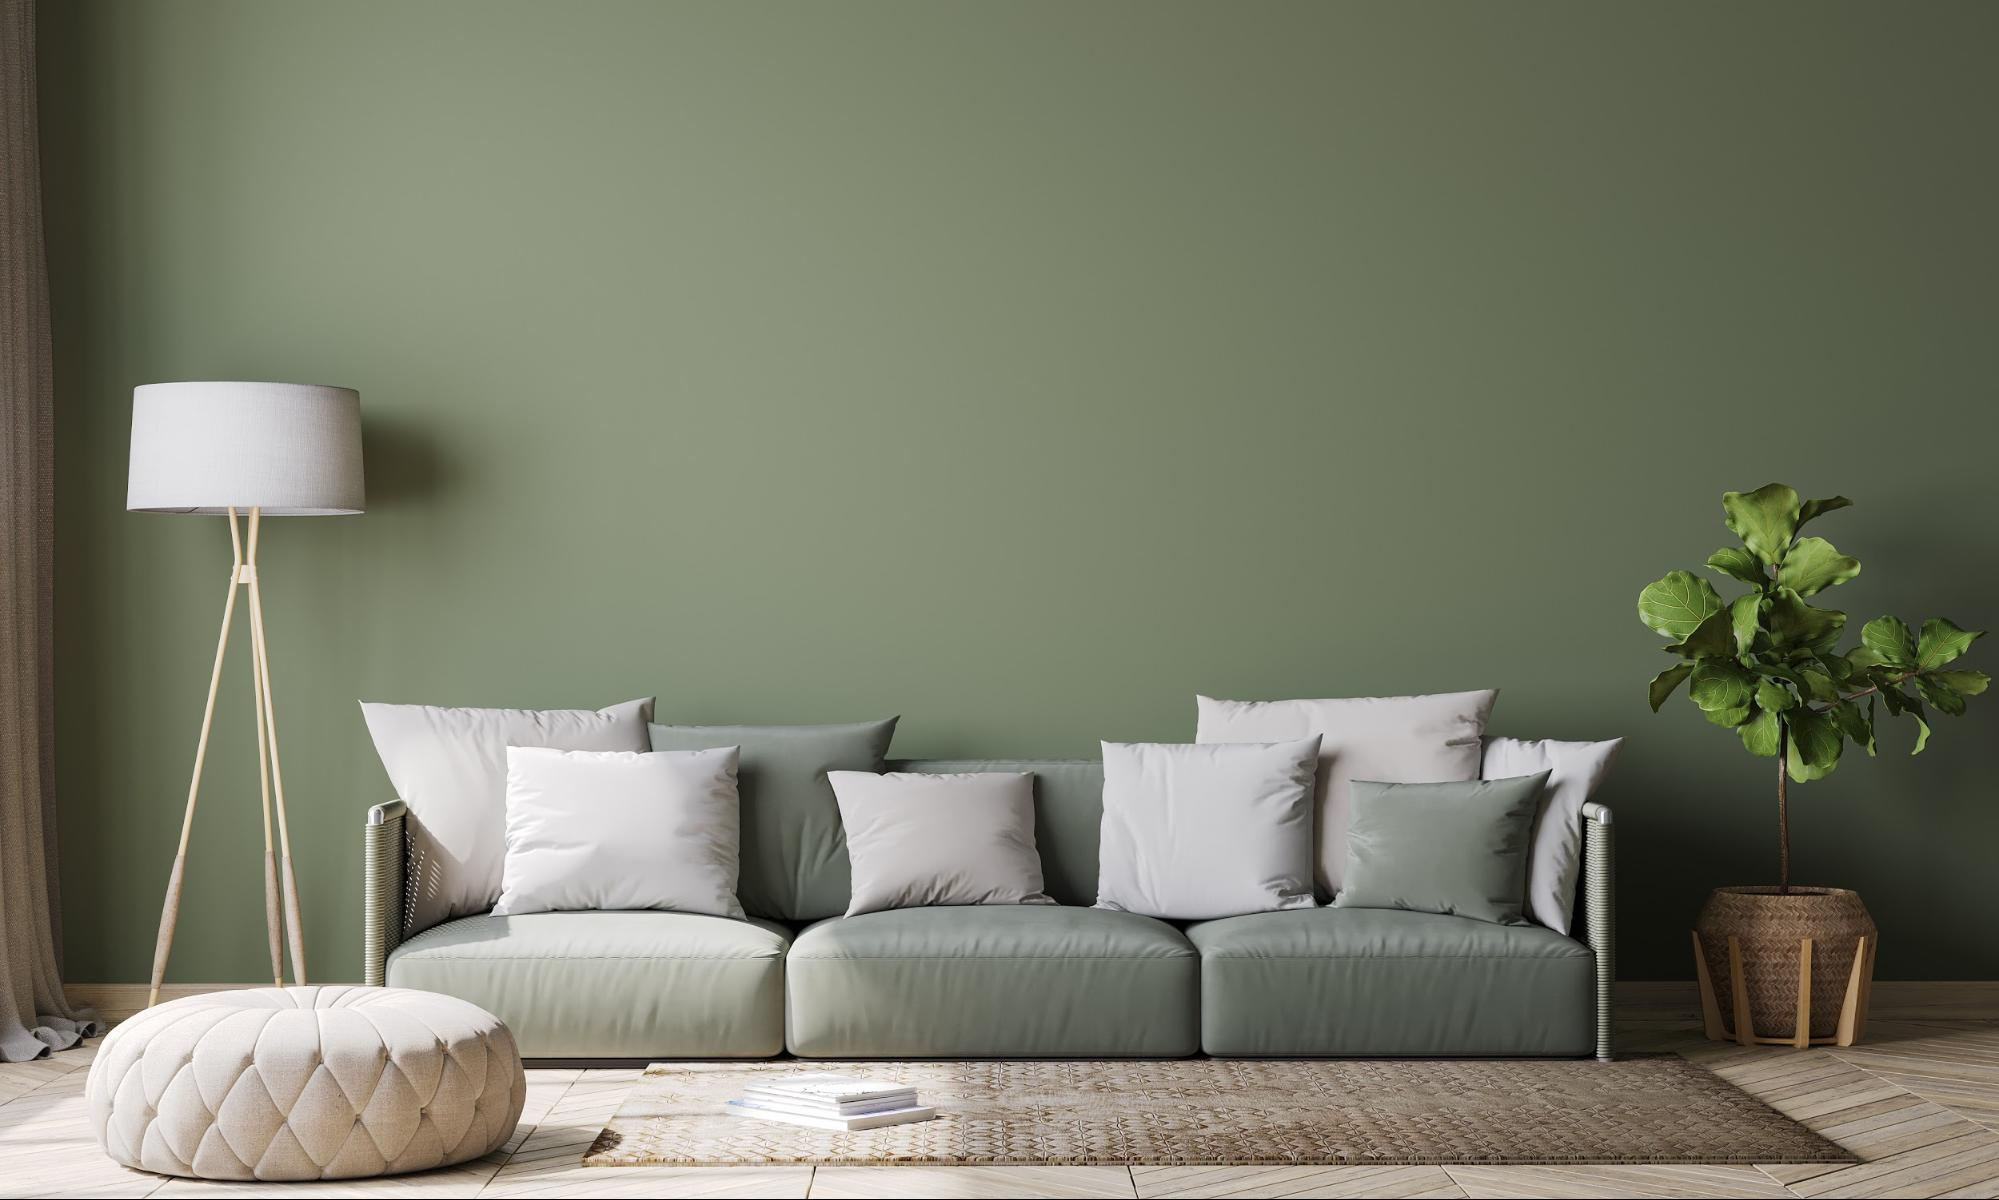 Modern living room with a green wall, green couch and white pillows